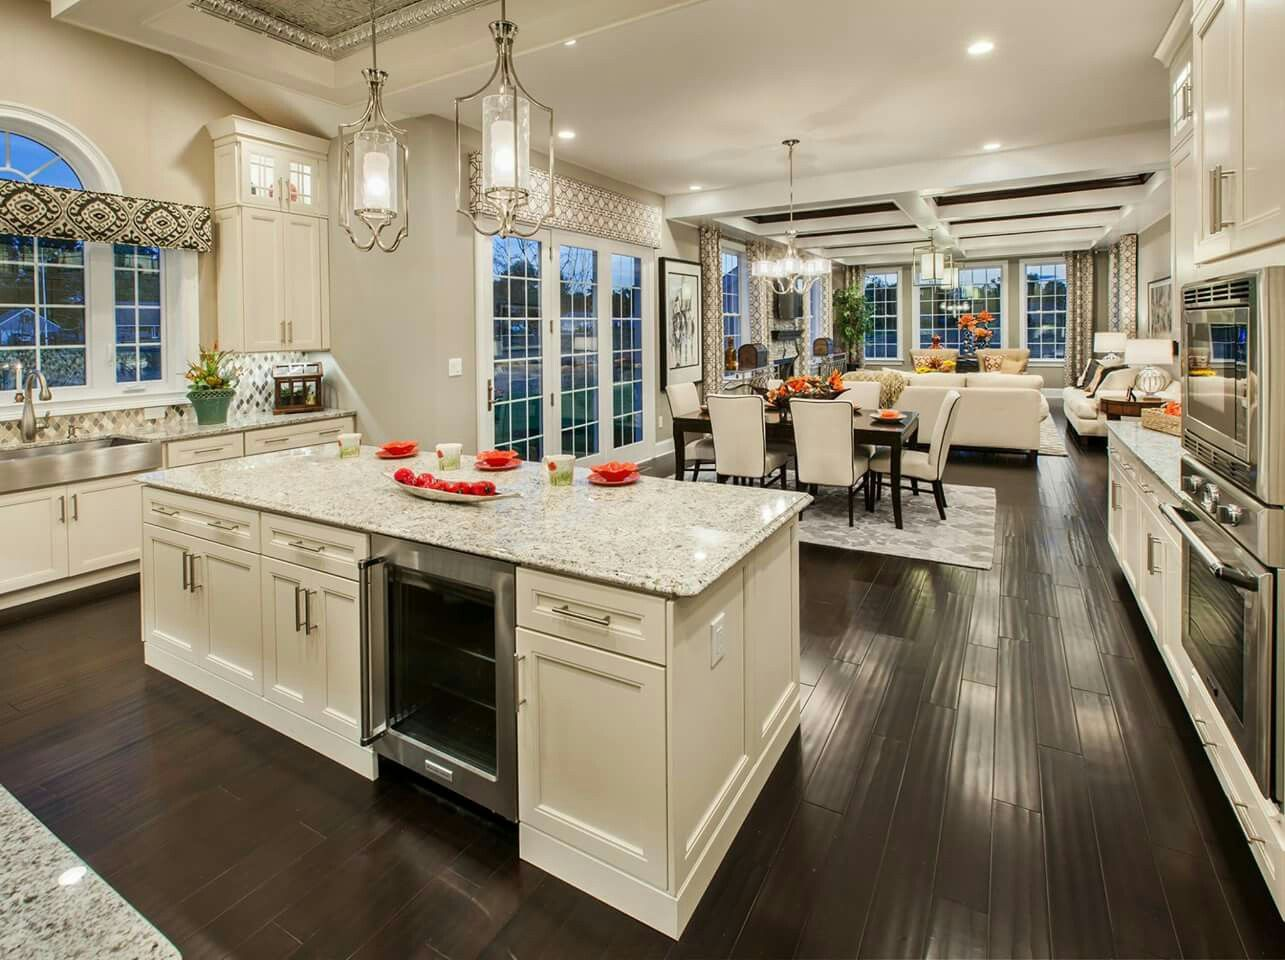 Pin By Melissa Benefiel On Layouts Open Concept Kitchen Living